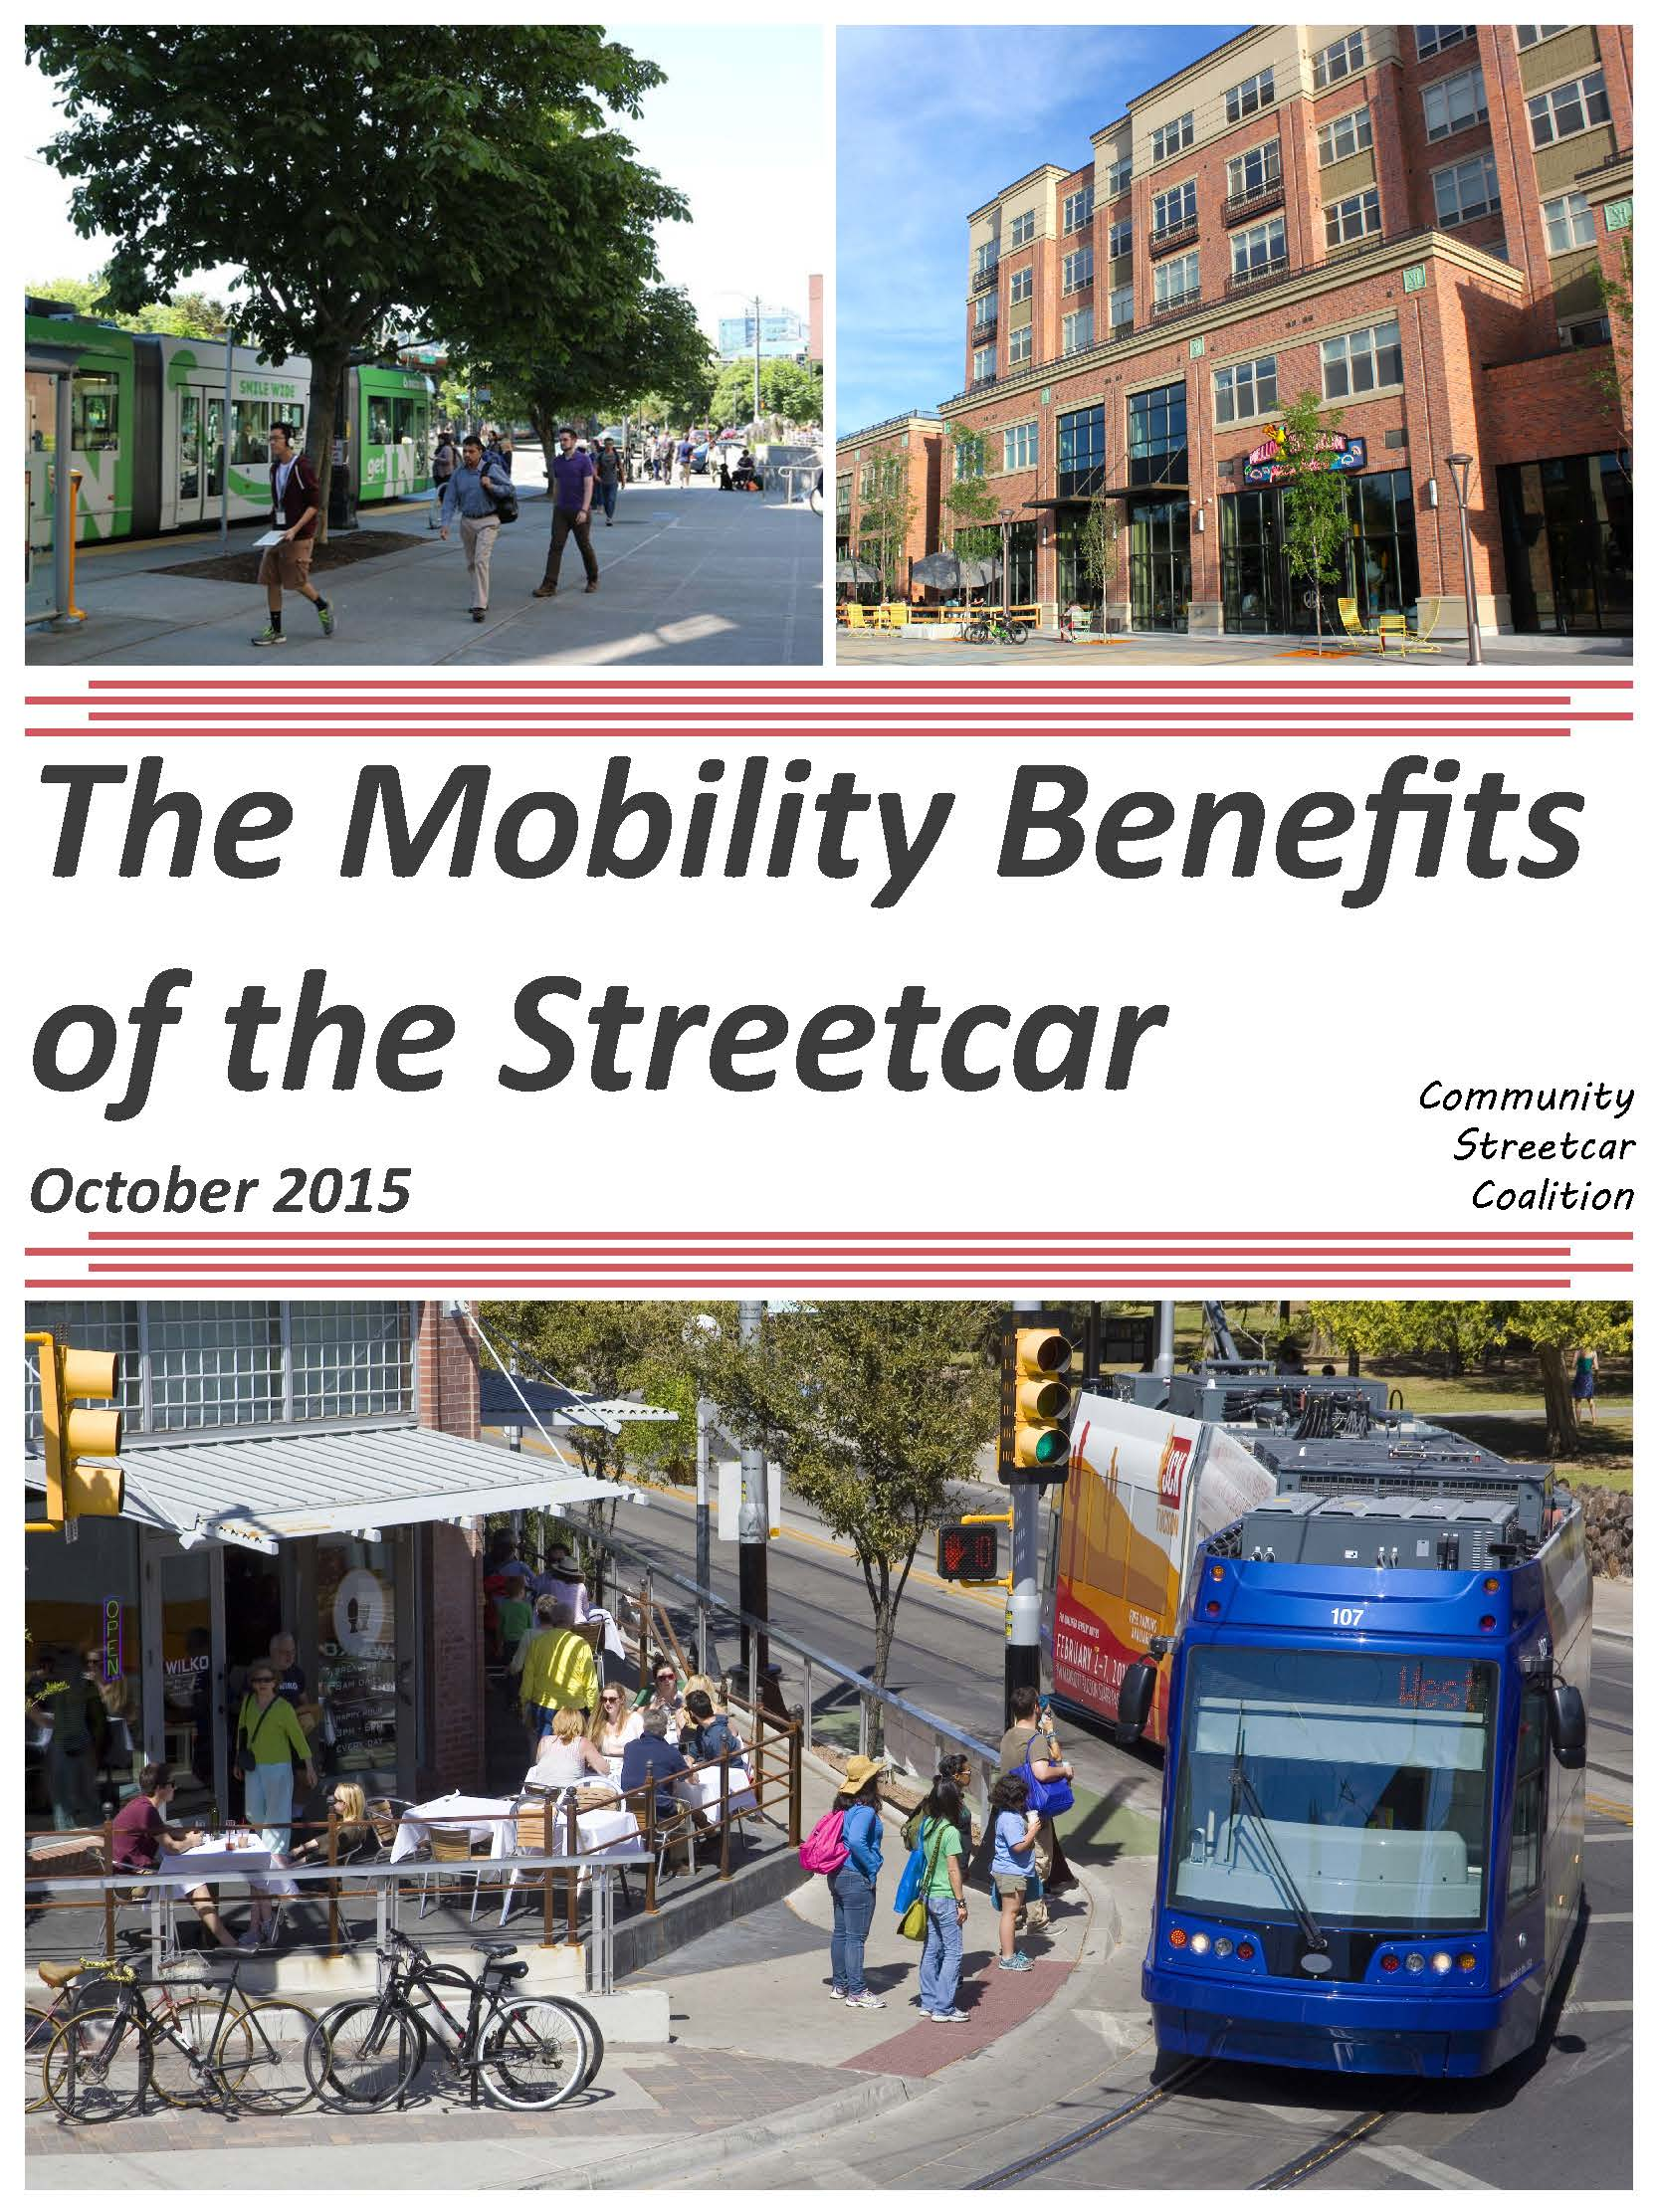 The Mobility Benefits of Streetcar